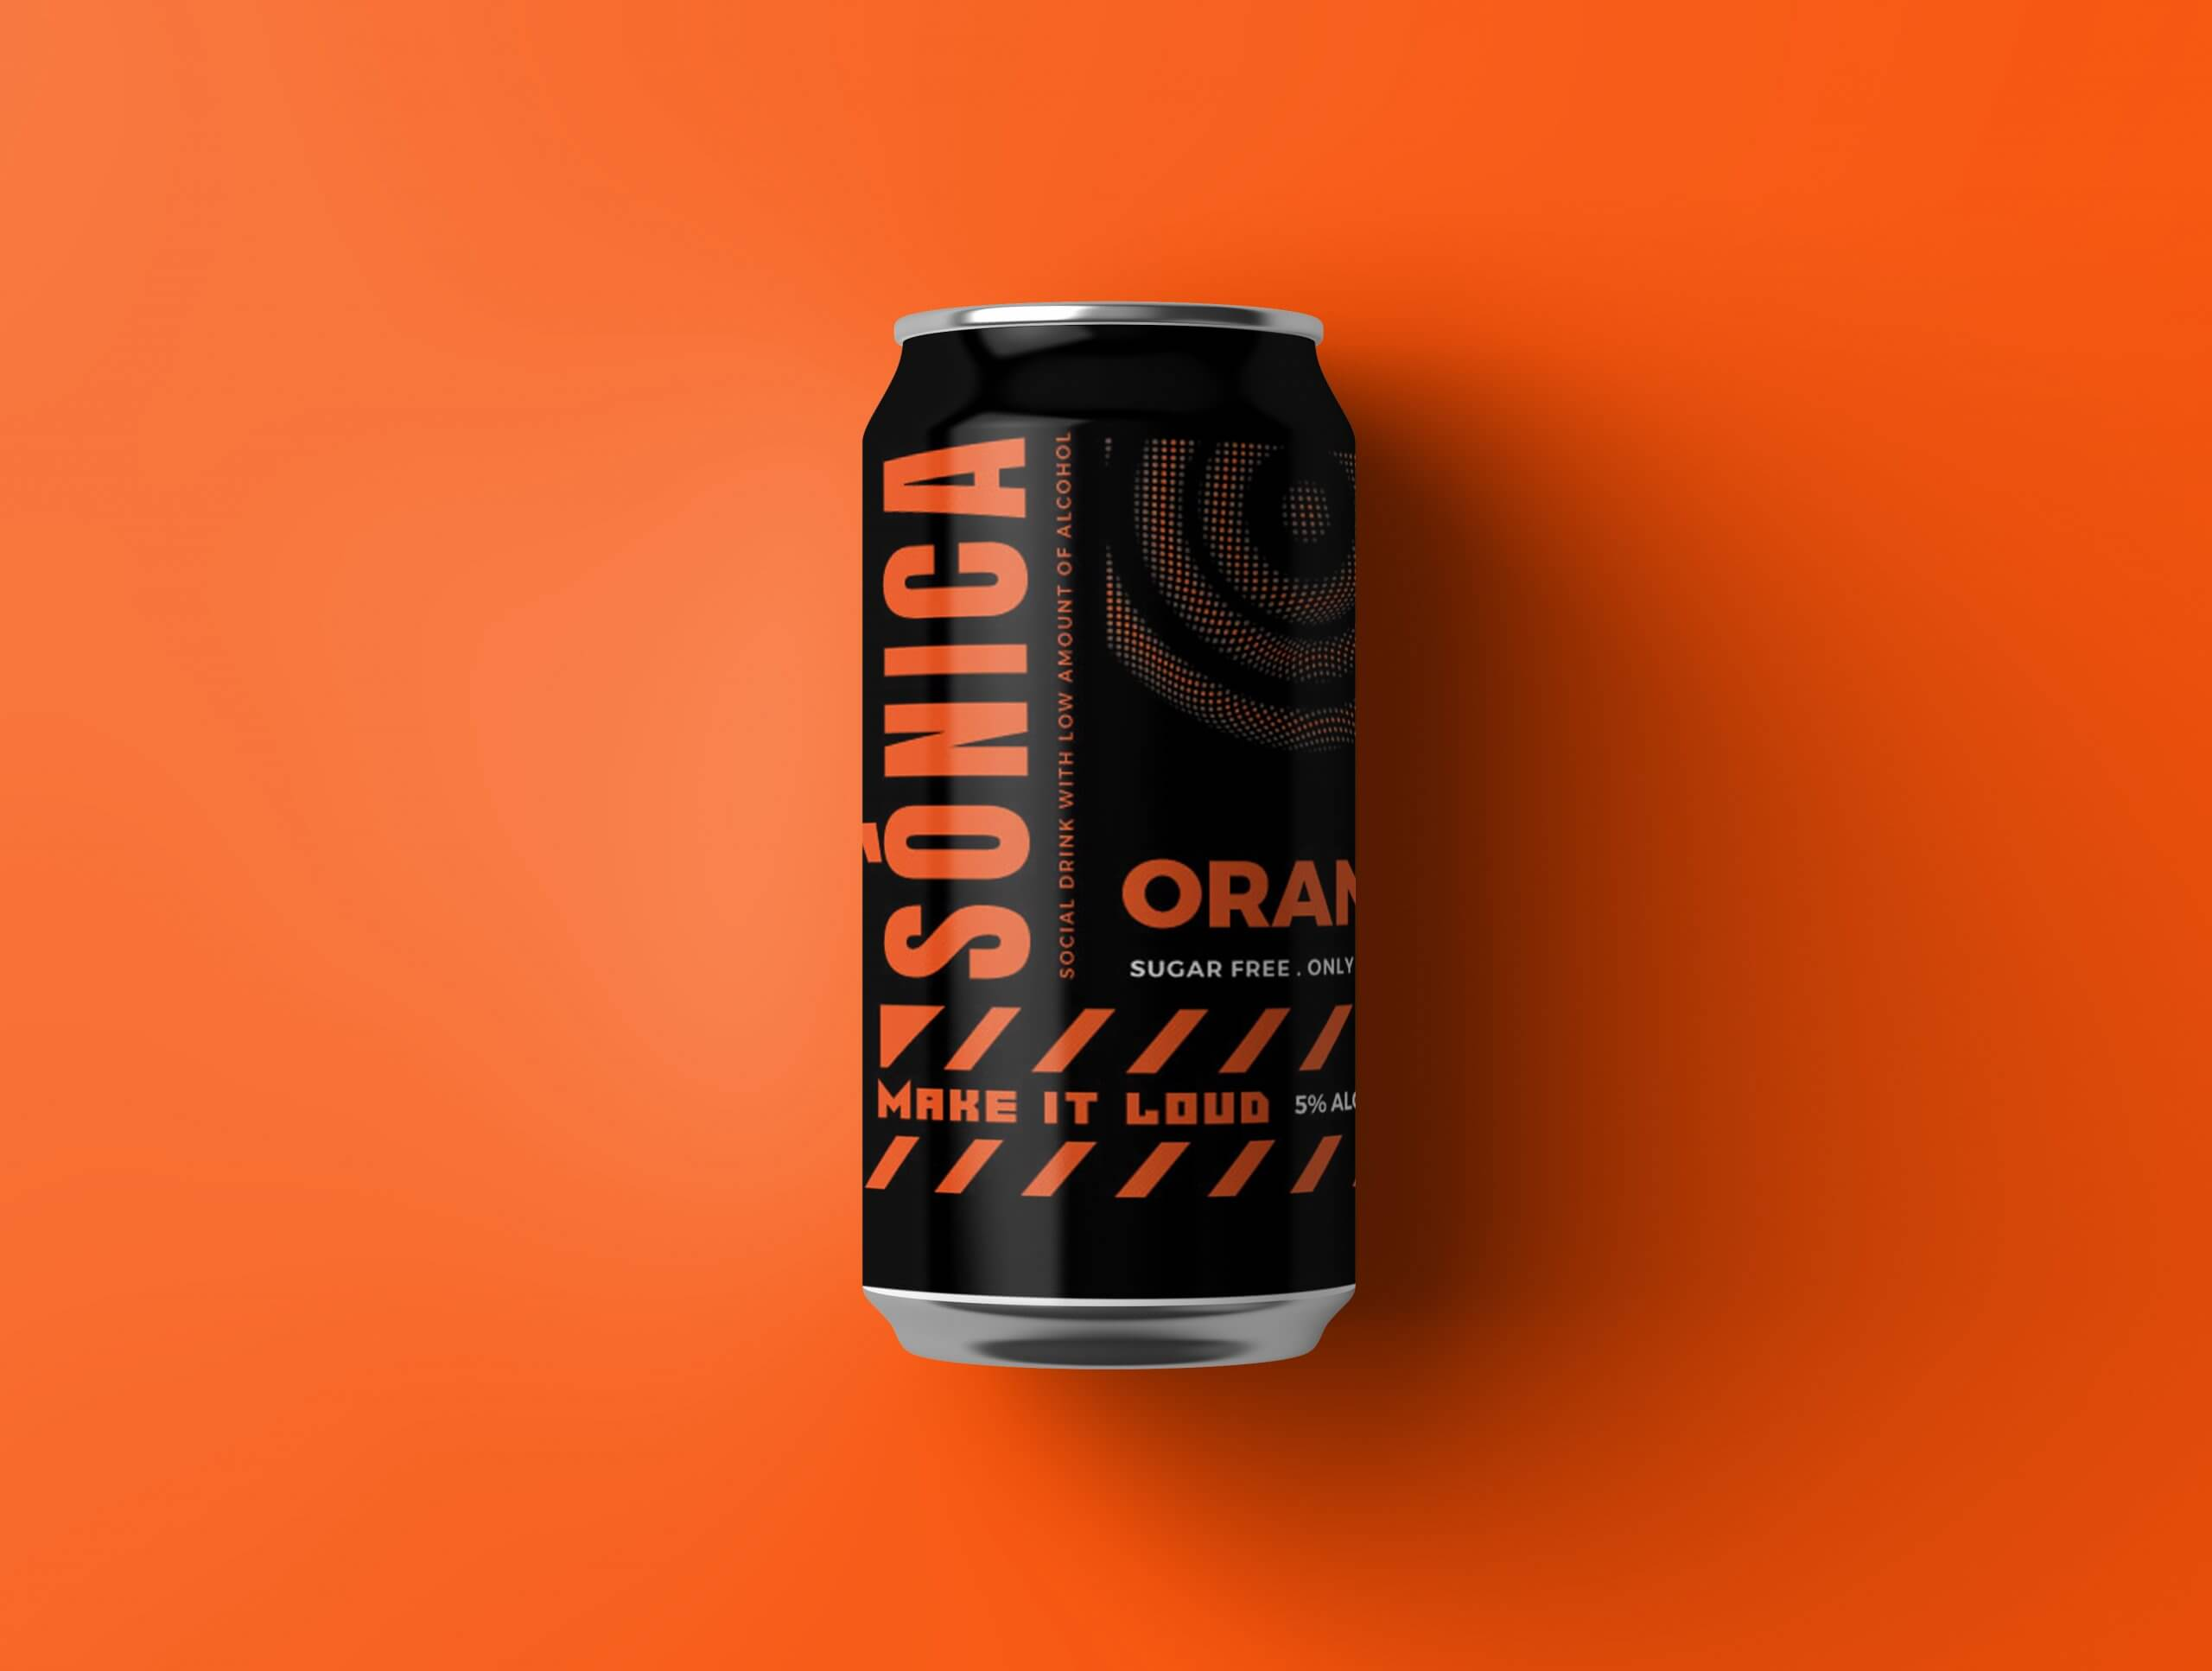 packaging design for drink product